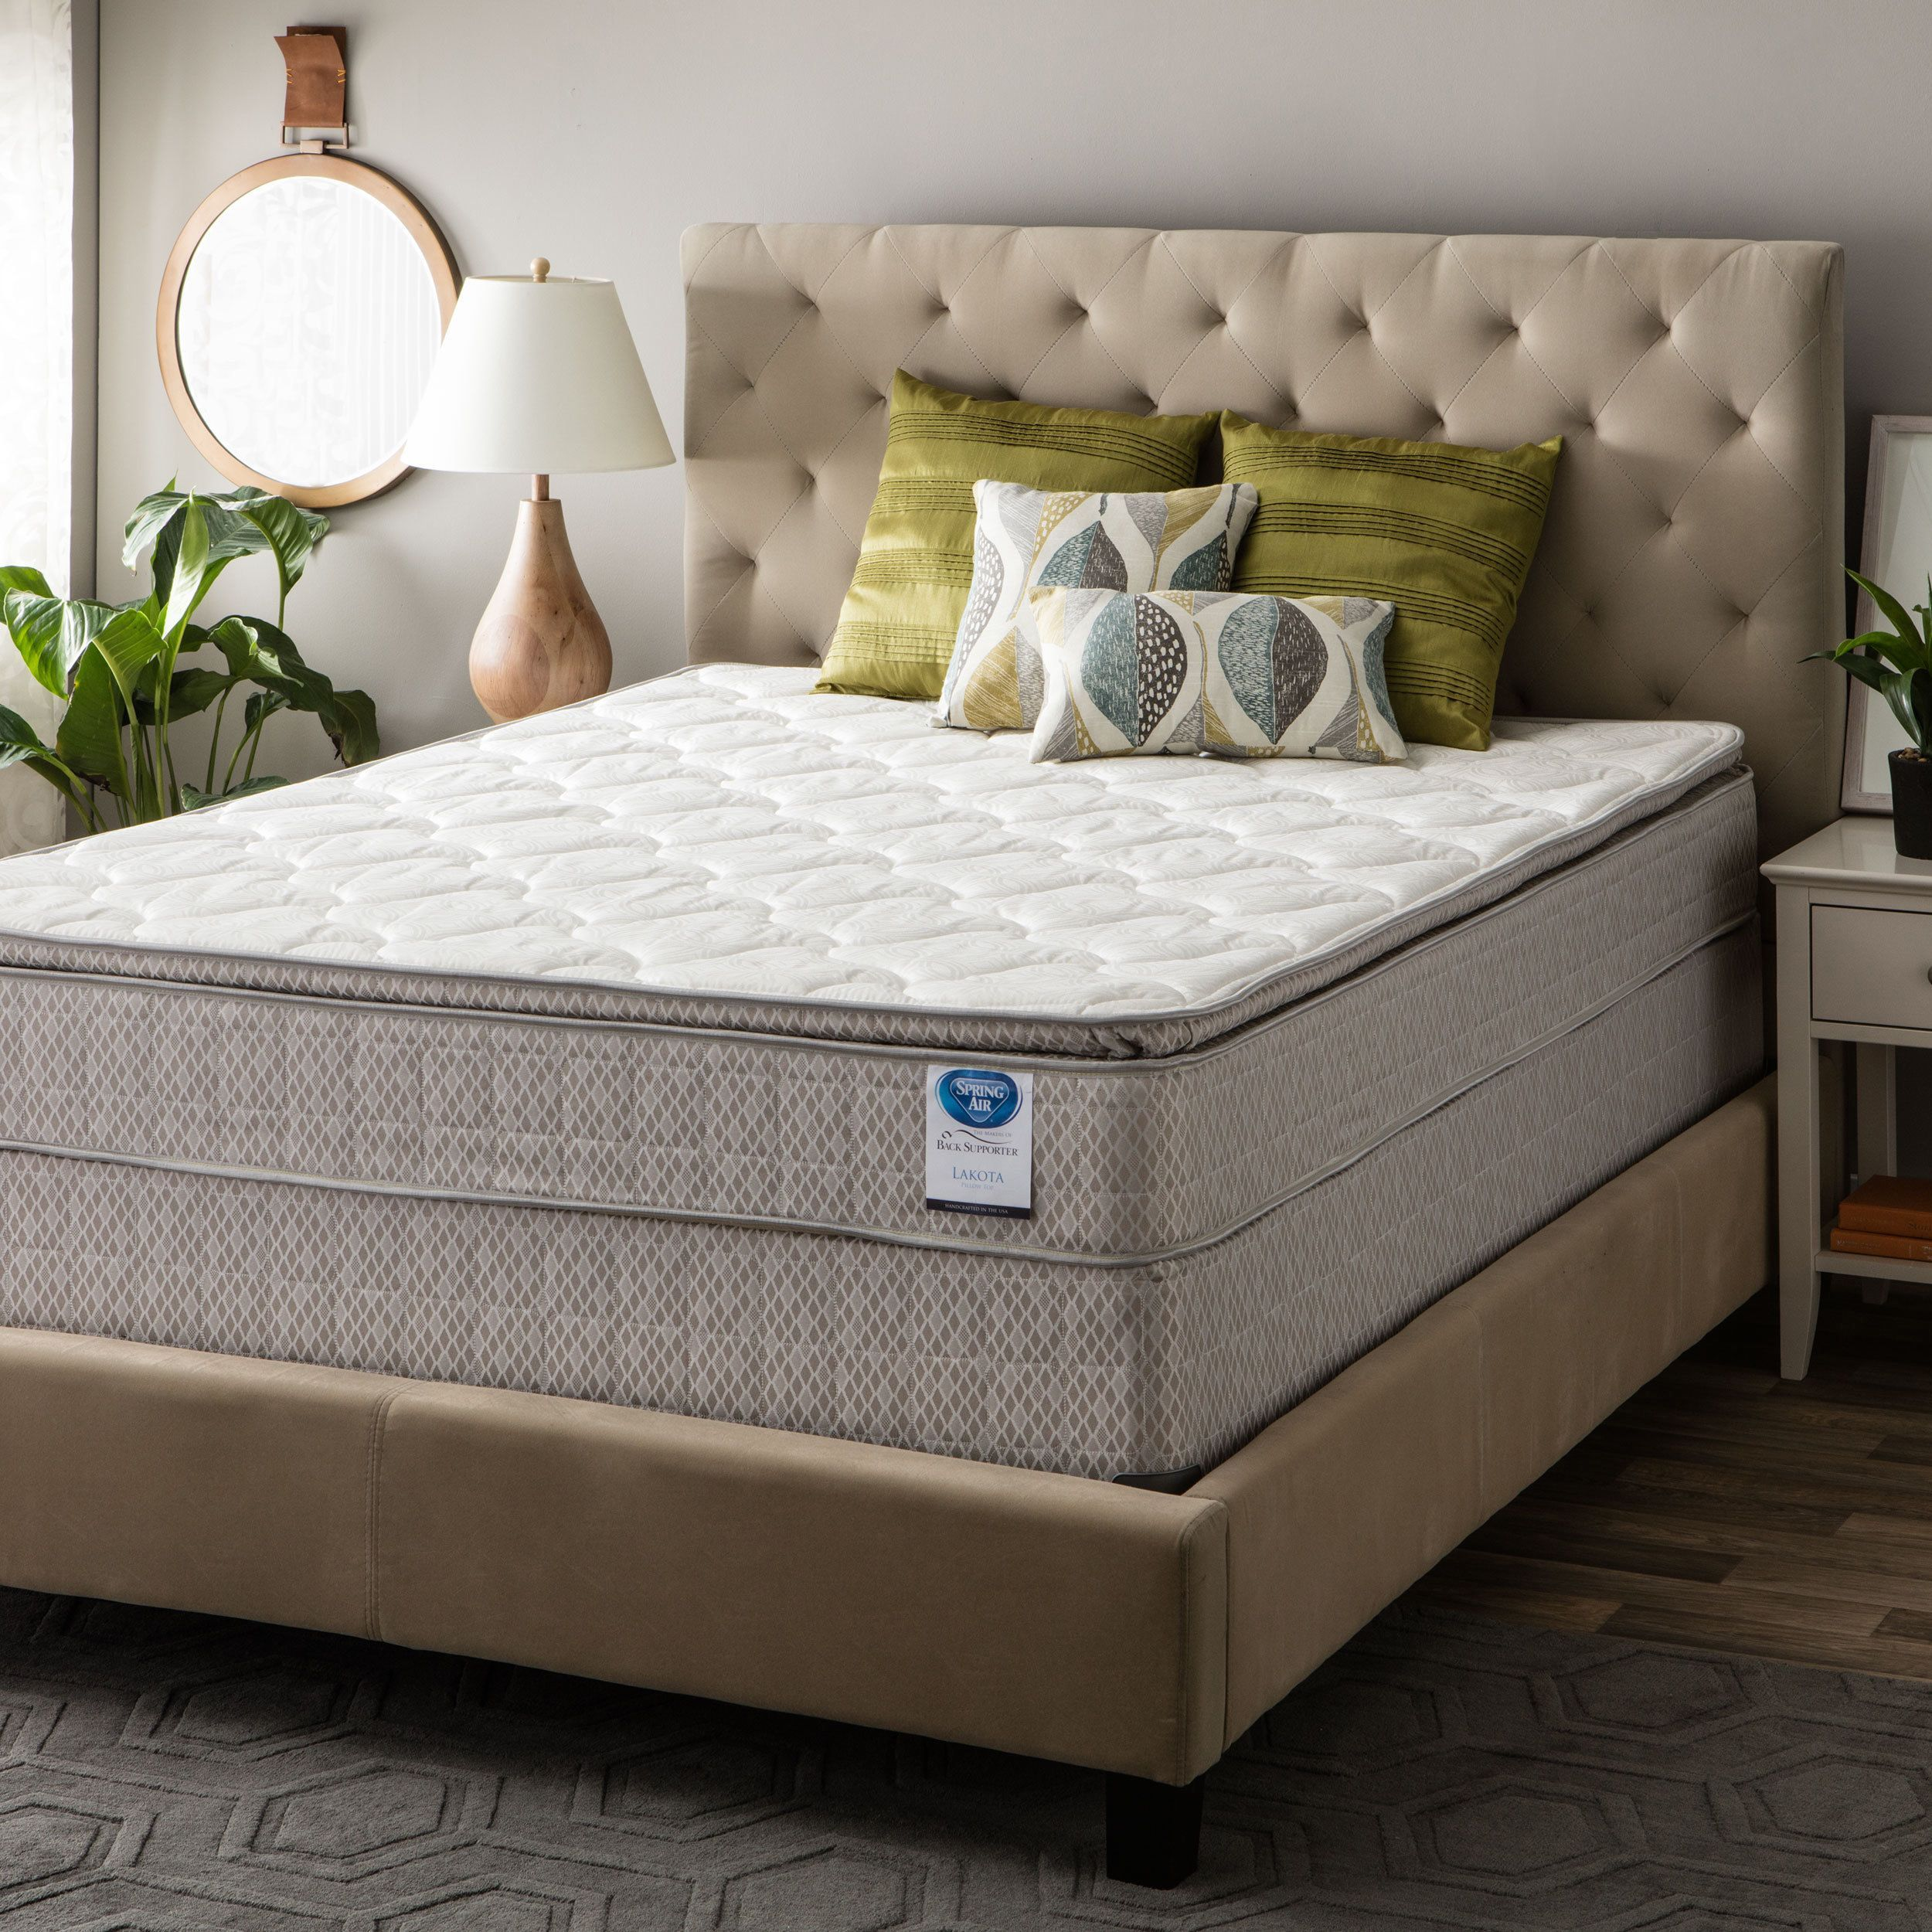 superb king size pillow at buyhypnos pdp main mattress top pocket hypnos rsp johnlewis online spring firm